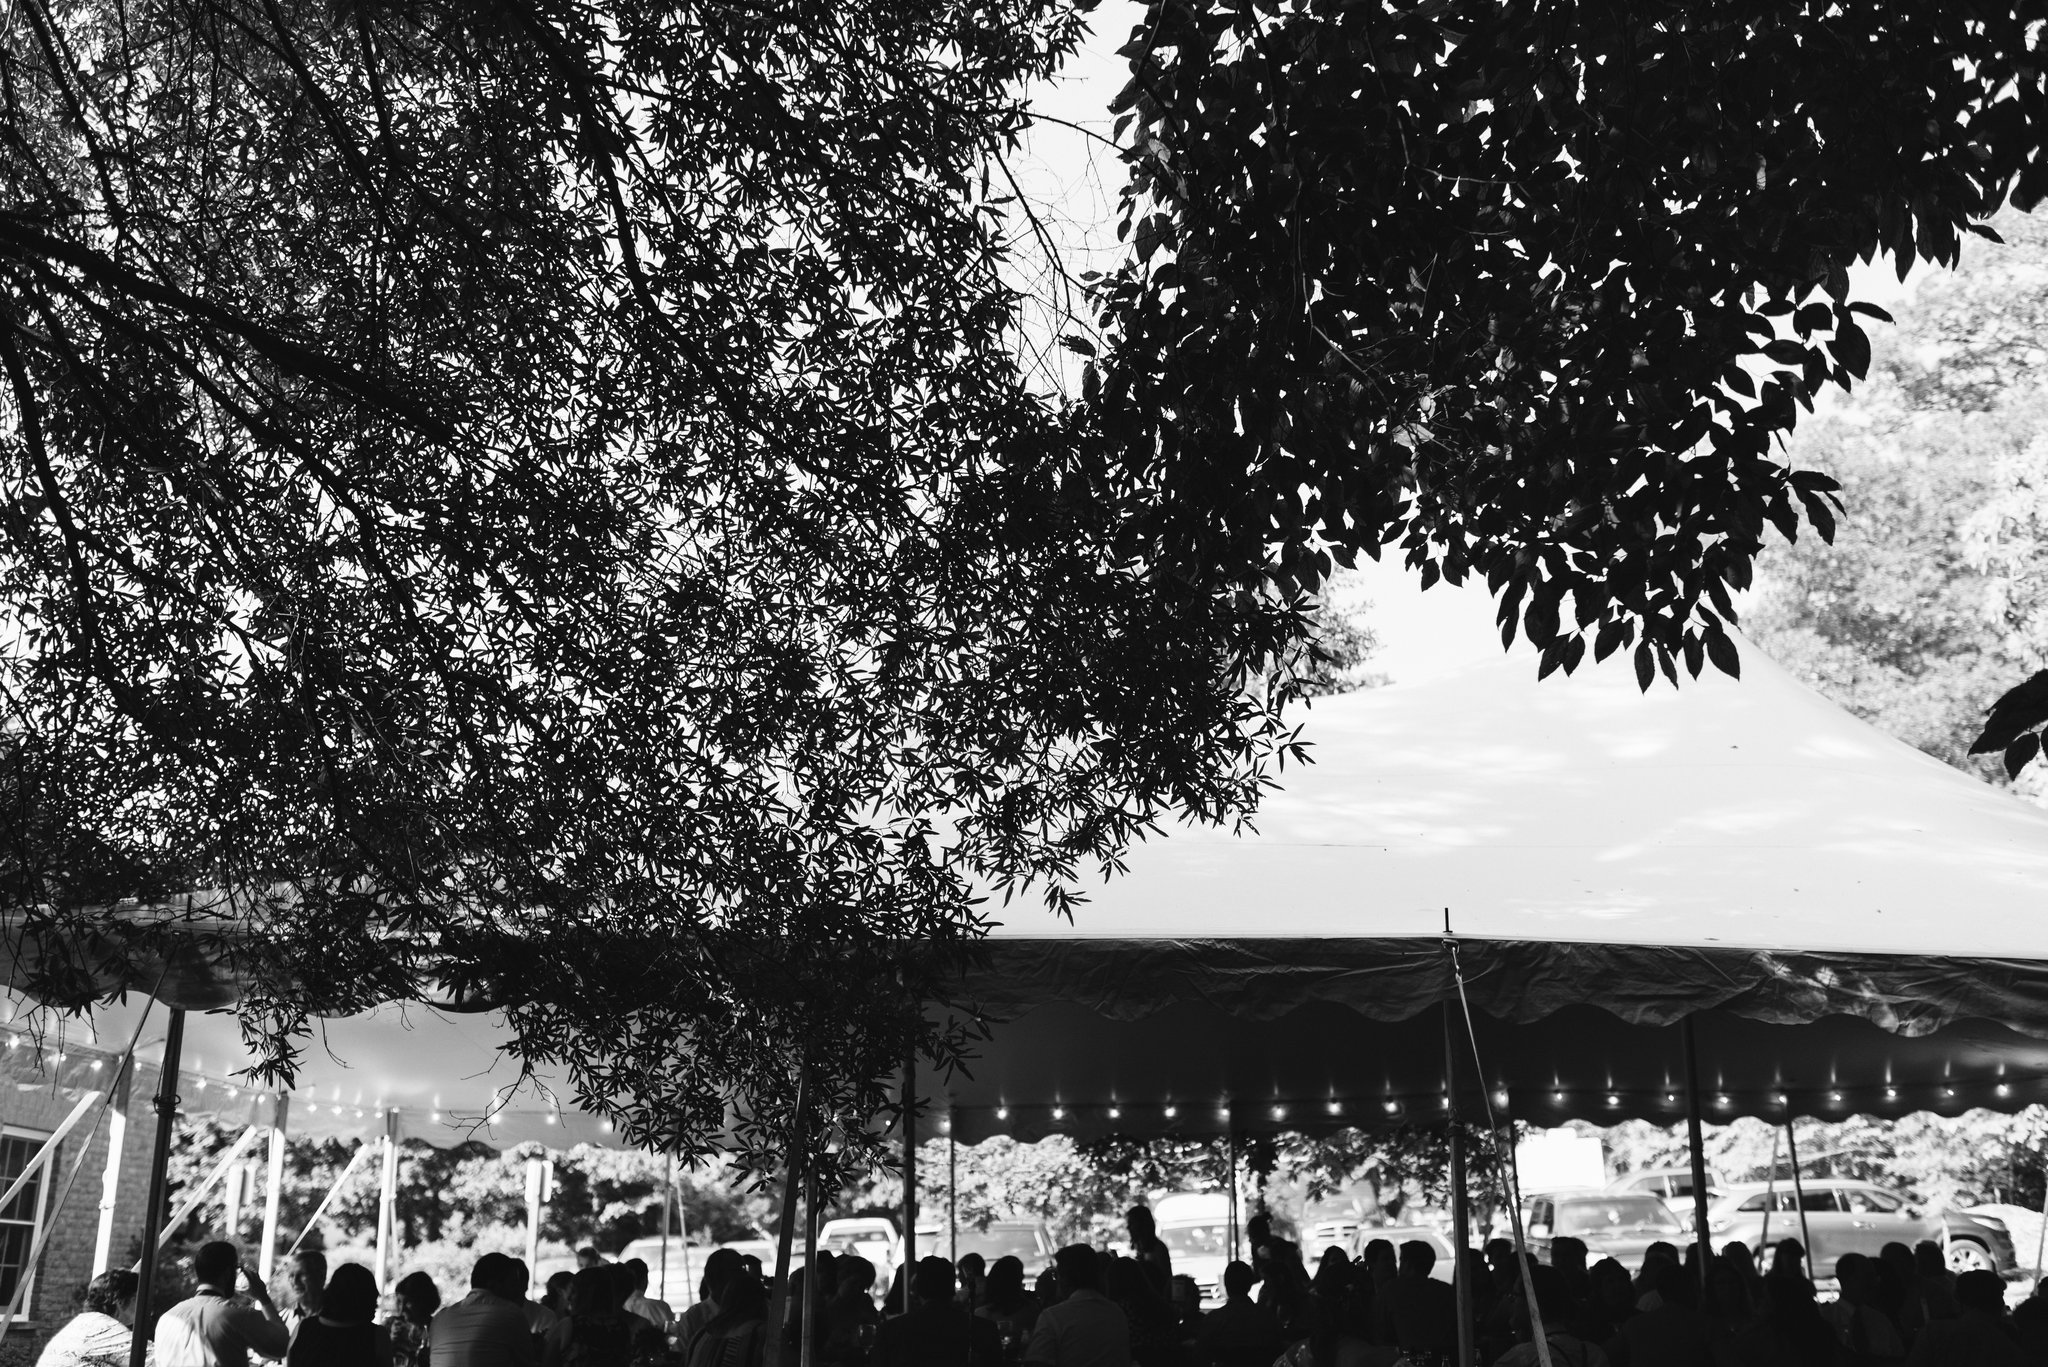 Annapolis, Quaker Wedding, Maryland Wedding Photographer, Intimate, Small Wedding, Vintage, DIY, Wedding Guests Under Tent, Outdoor Reception, Black and White Photo